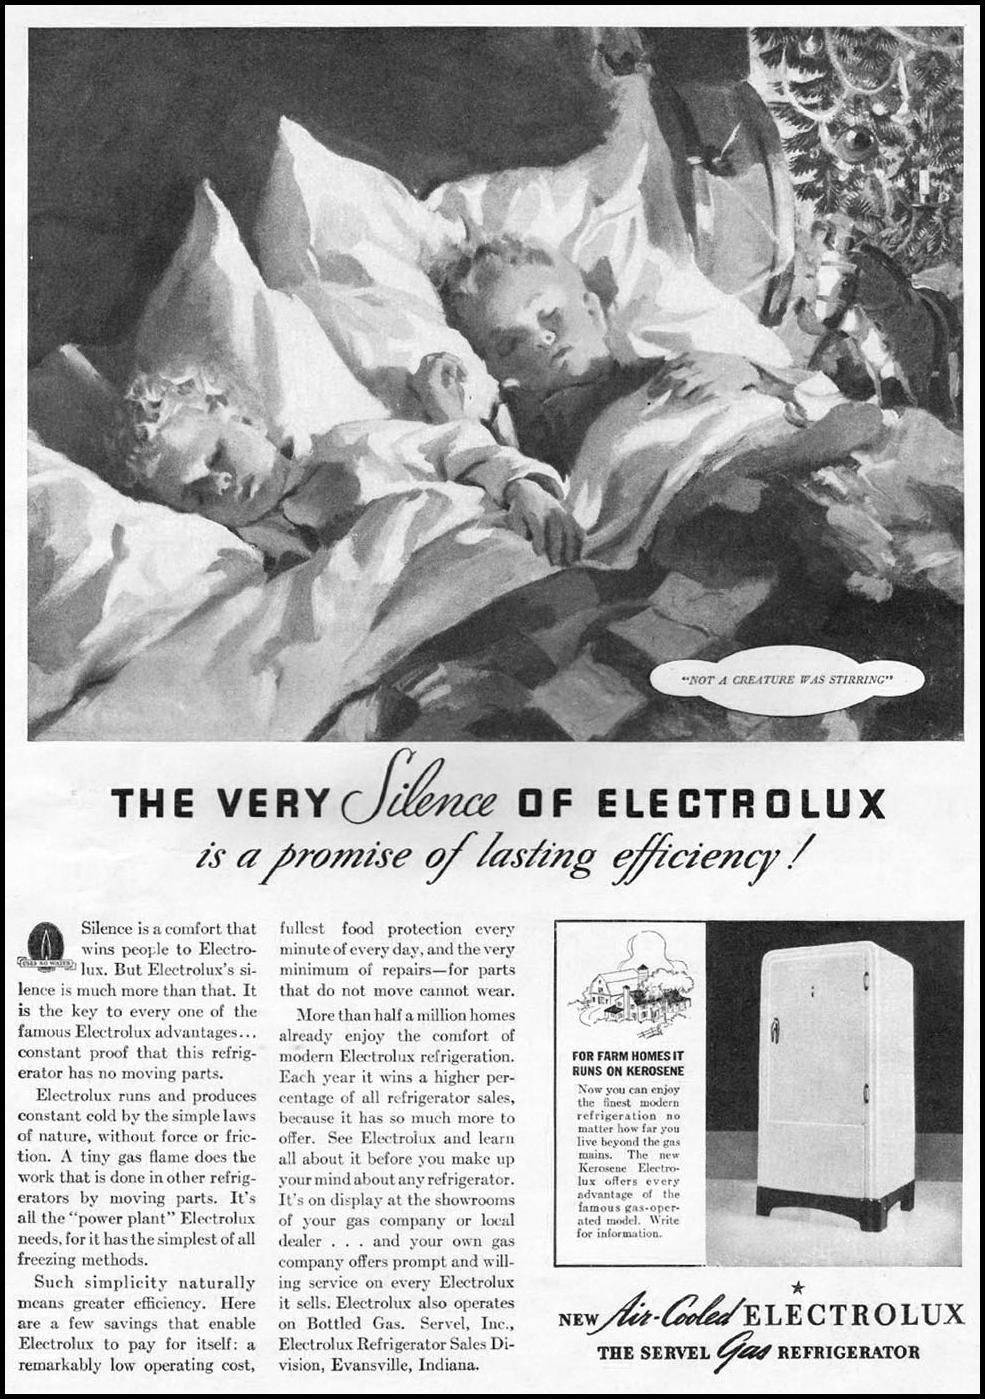 ELECTROLUX REFRIGERATORS